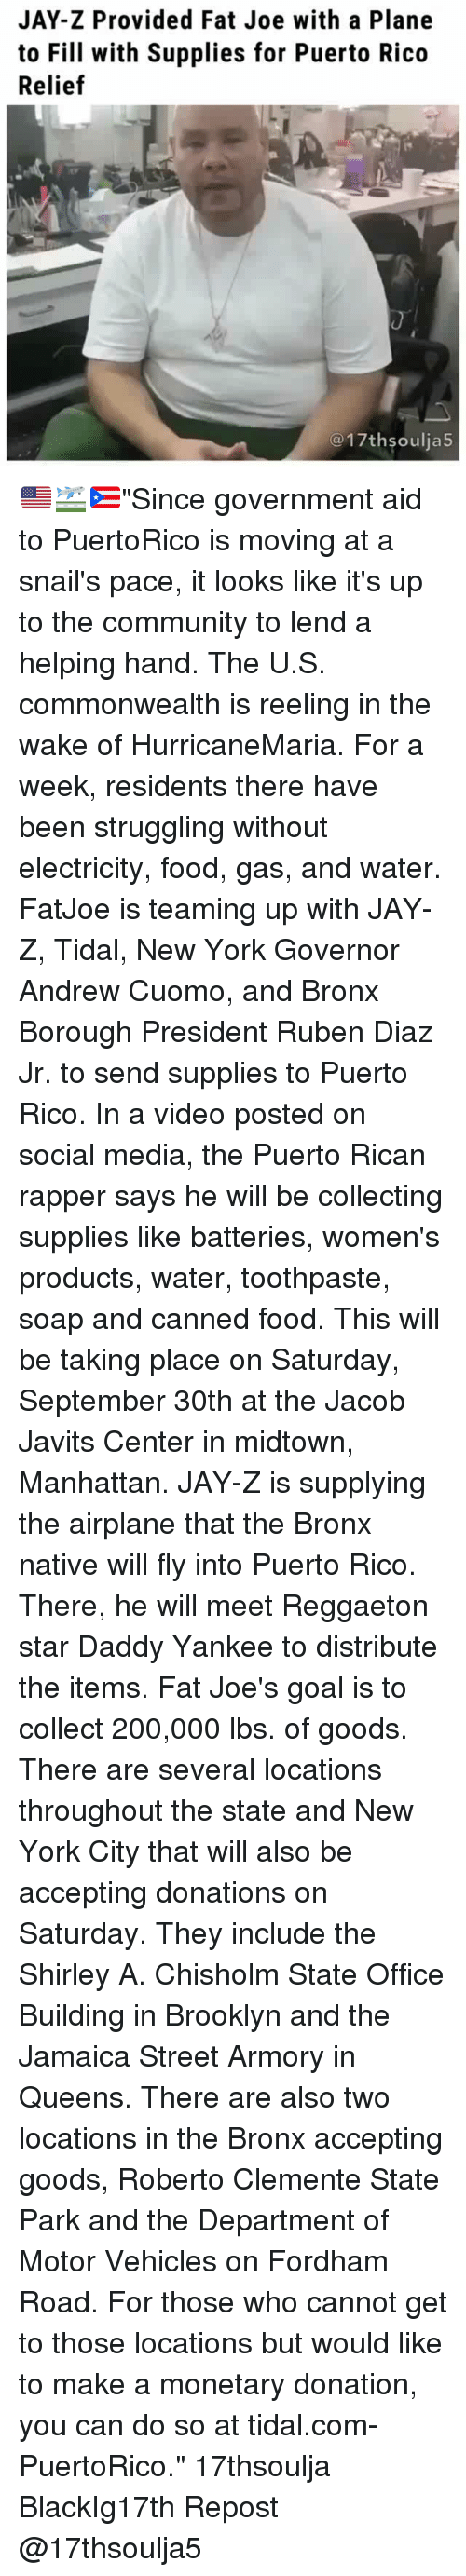 """commonwealth: JAY-Z Provided Fat Joe with a Plane  to Fill with Supplies for Puerto Rico  Relief  @17thsoulja5 🇺🇸🛫🇵🇷""""Since government aid to PuertoRico is moving at a snail's pace, it looks like it's up to the community to lend a helping hand. The U.S. commonwealth is reeling in the wake of HurricaneMaria. For a week, residents there have been struggling without electricity, food, gas, and water. FatJoe is teaming up with JAY-Z, Tidal, New York Governor Andrew Cuomo, and Bronx Borough President Ruben Diaz Jr. to send supplies to Puerto Rico. In a video posted on social media, the Puerto Rican rapper says he will be collecting supplies like batteries, women's products, water, toothpaste, soap and canned food. This will be taking place on Saturday, September 30th at the Jacob Javits Center in midtown, Manhattan. JAY-Z is supplying the airplane that the Bronx native will fly into Puerto Rico. There, he will meet Reggaeton star Daddy Yankee to distribute the items. Fat Joe's goal is to collect 200,000 lbs. of goods. There are several locations throughout the state and New York City that will also be accepting donations on Saturday. They include the Shirley A. Chisholm State Office Building in Brooklyn and the Jamaica Street Armory in Queens. There are also two locations in the Bronx accepting goods, Roberto Clemente State Park and the Department of Motor Vehicles on Fordham Road. For those who cannot get to those locations but would like to make a monetary donation, you can do so at tidal.com-PuertoRico."""" 17thsoulja BlackIg17th Repost @17thsoulja5"""